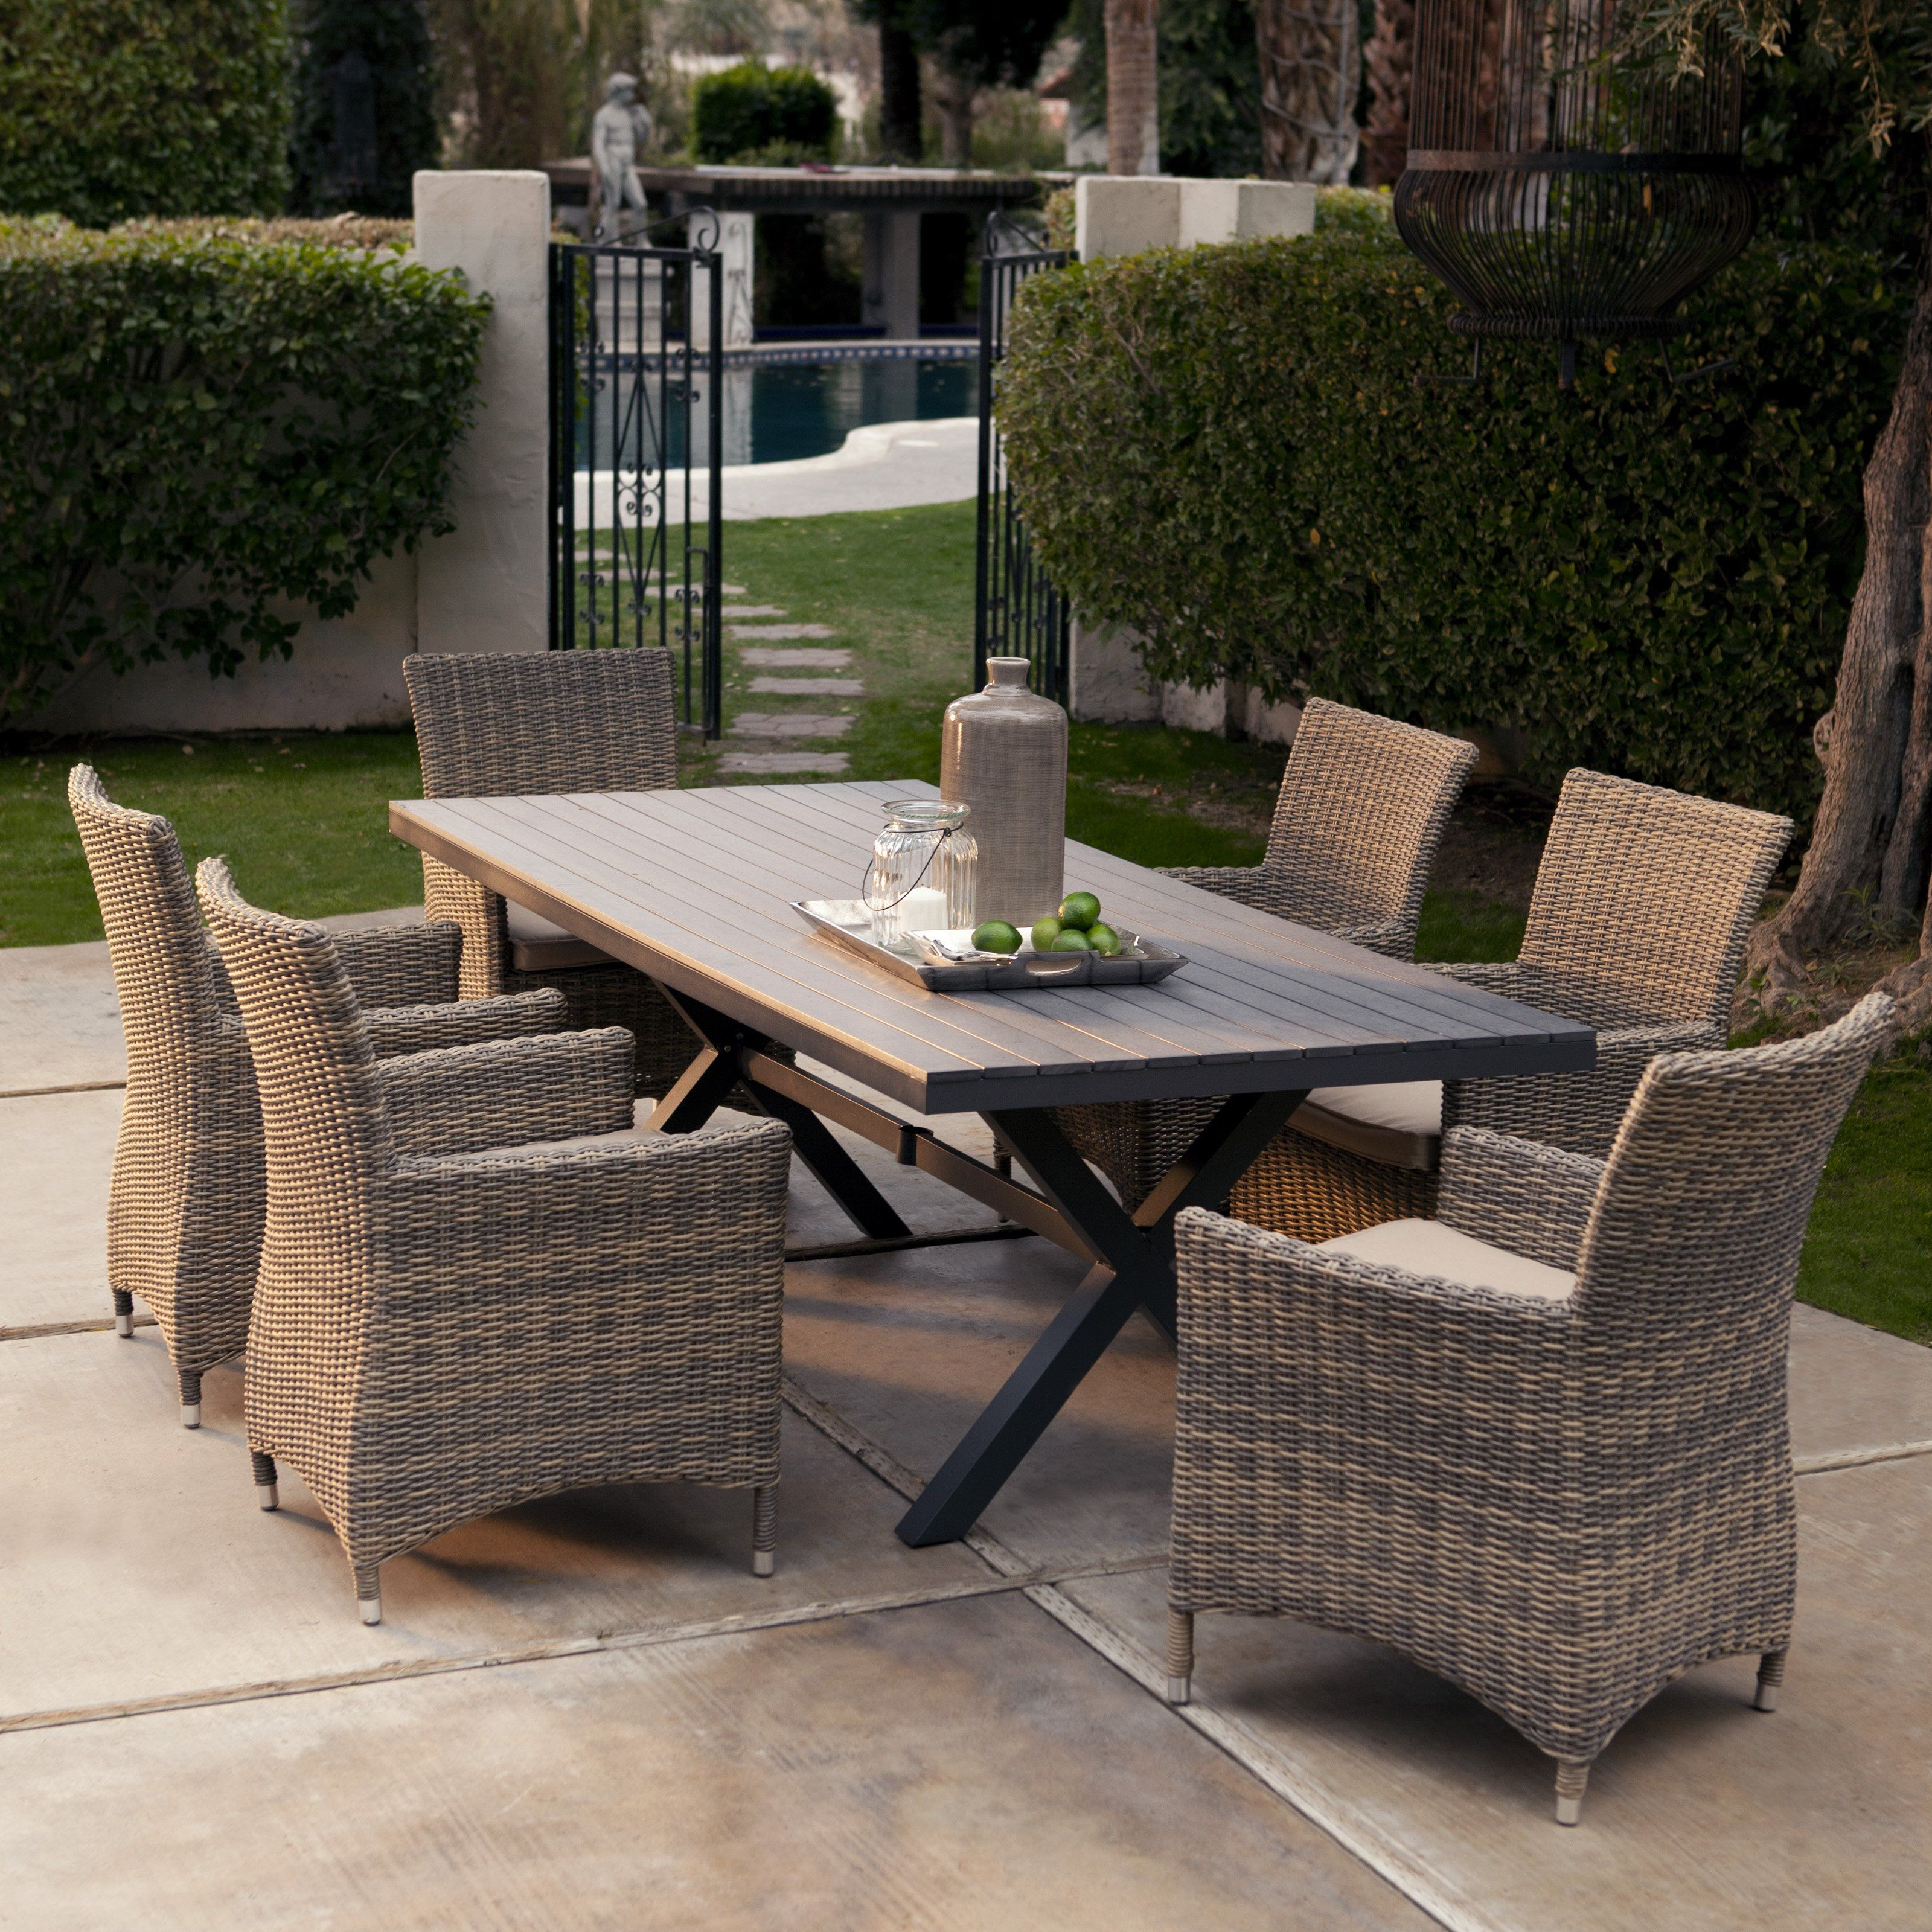 High Quality Bella All Weather Wicker Patio Dining Set   Seats 6   Patio Dining Sets At  Hayneedle